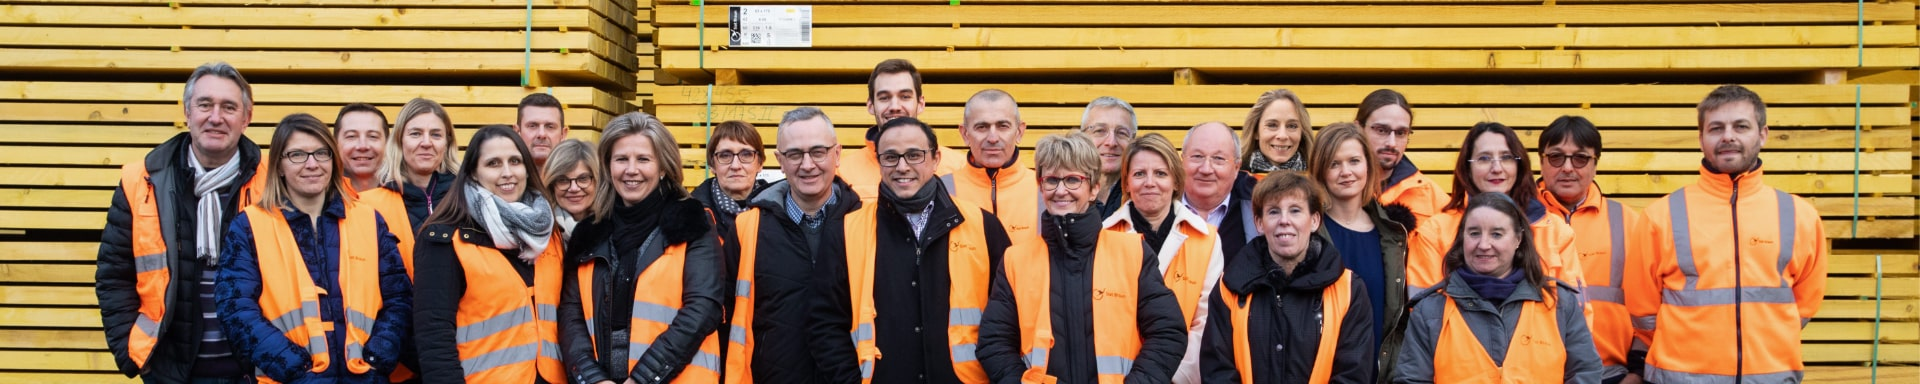 services Groupe SIAT